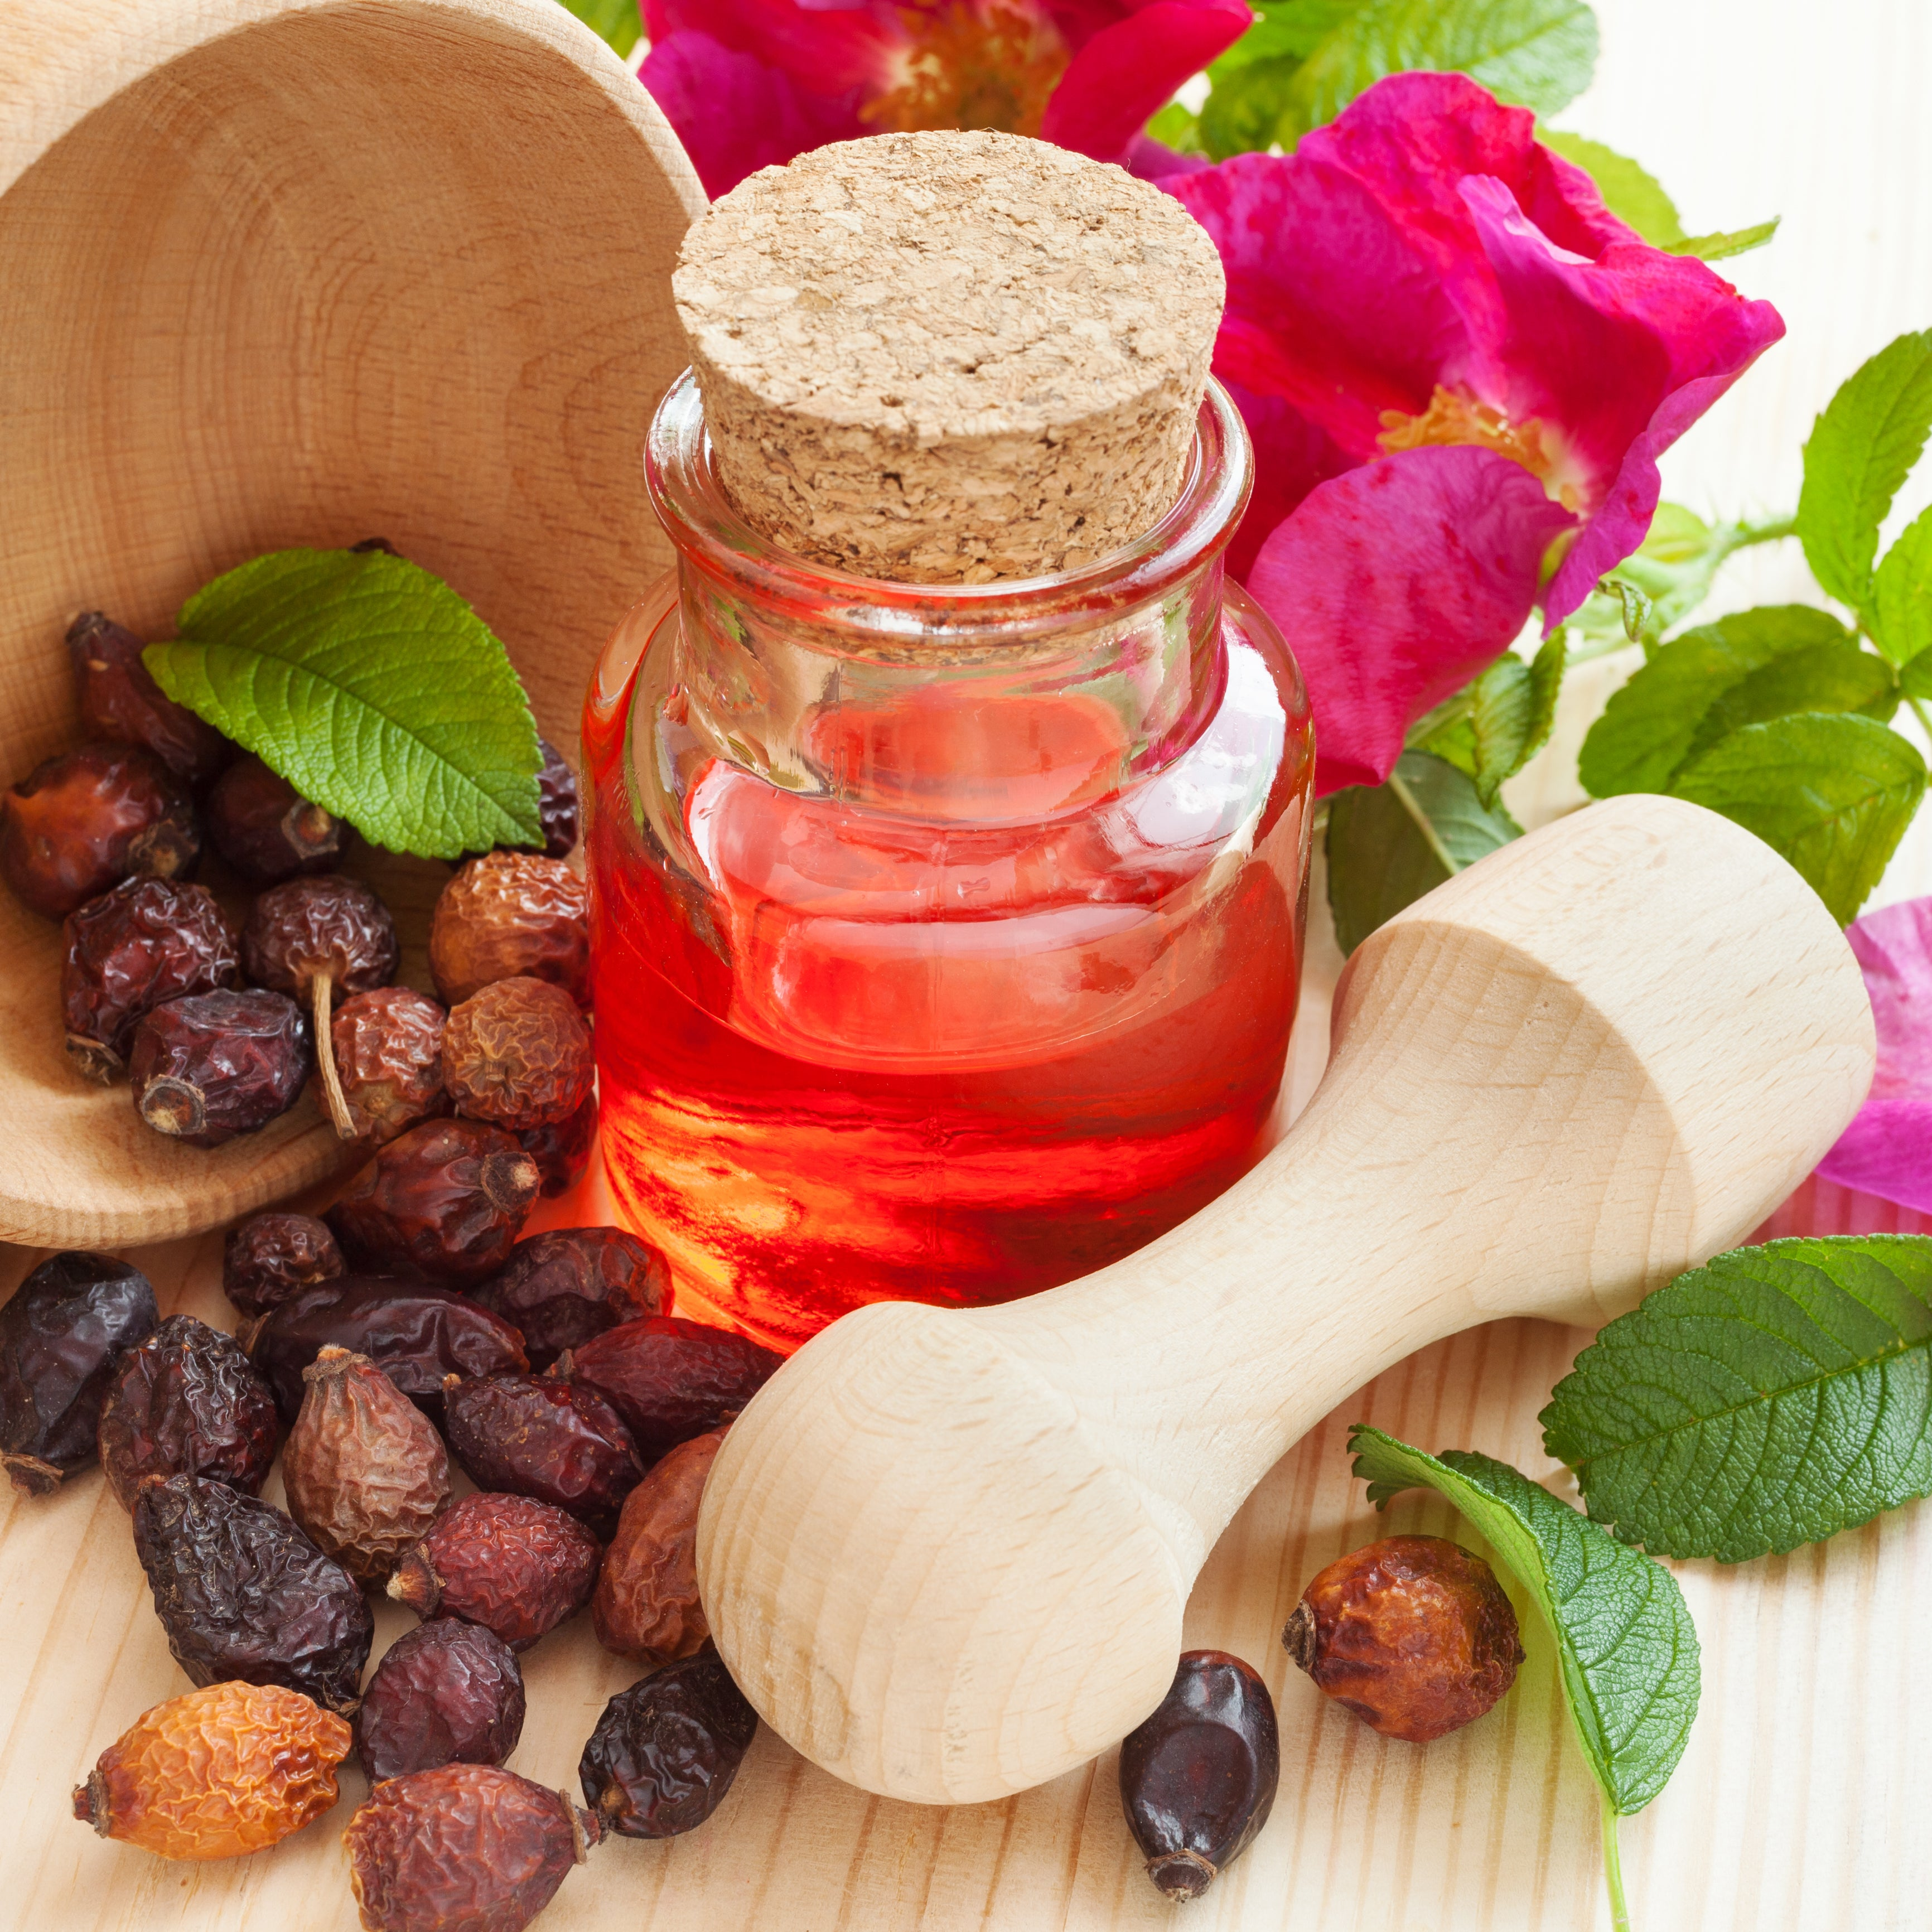 Rose Hip Seed Oil:  A versatile oil with amazing benefits